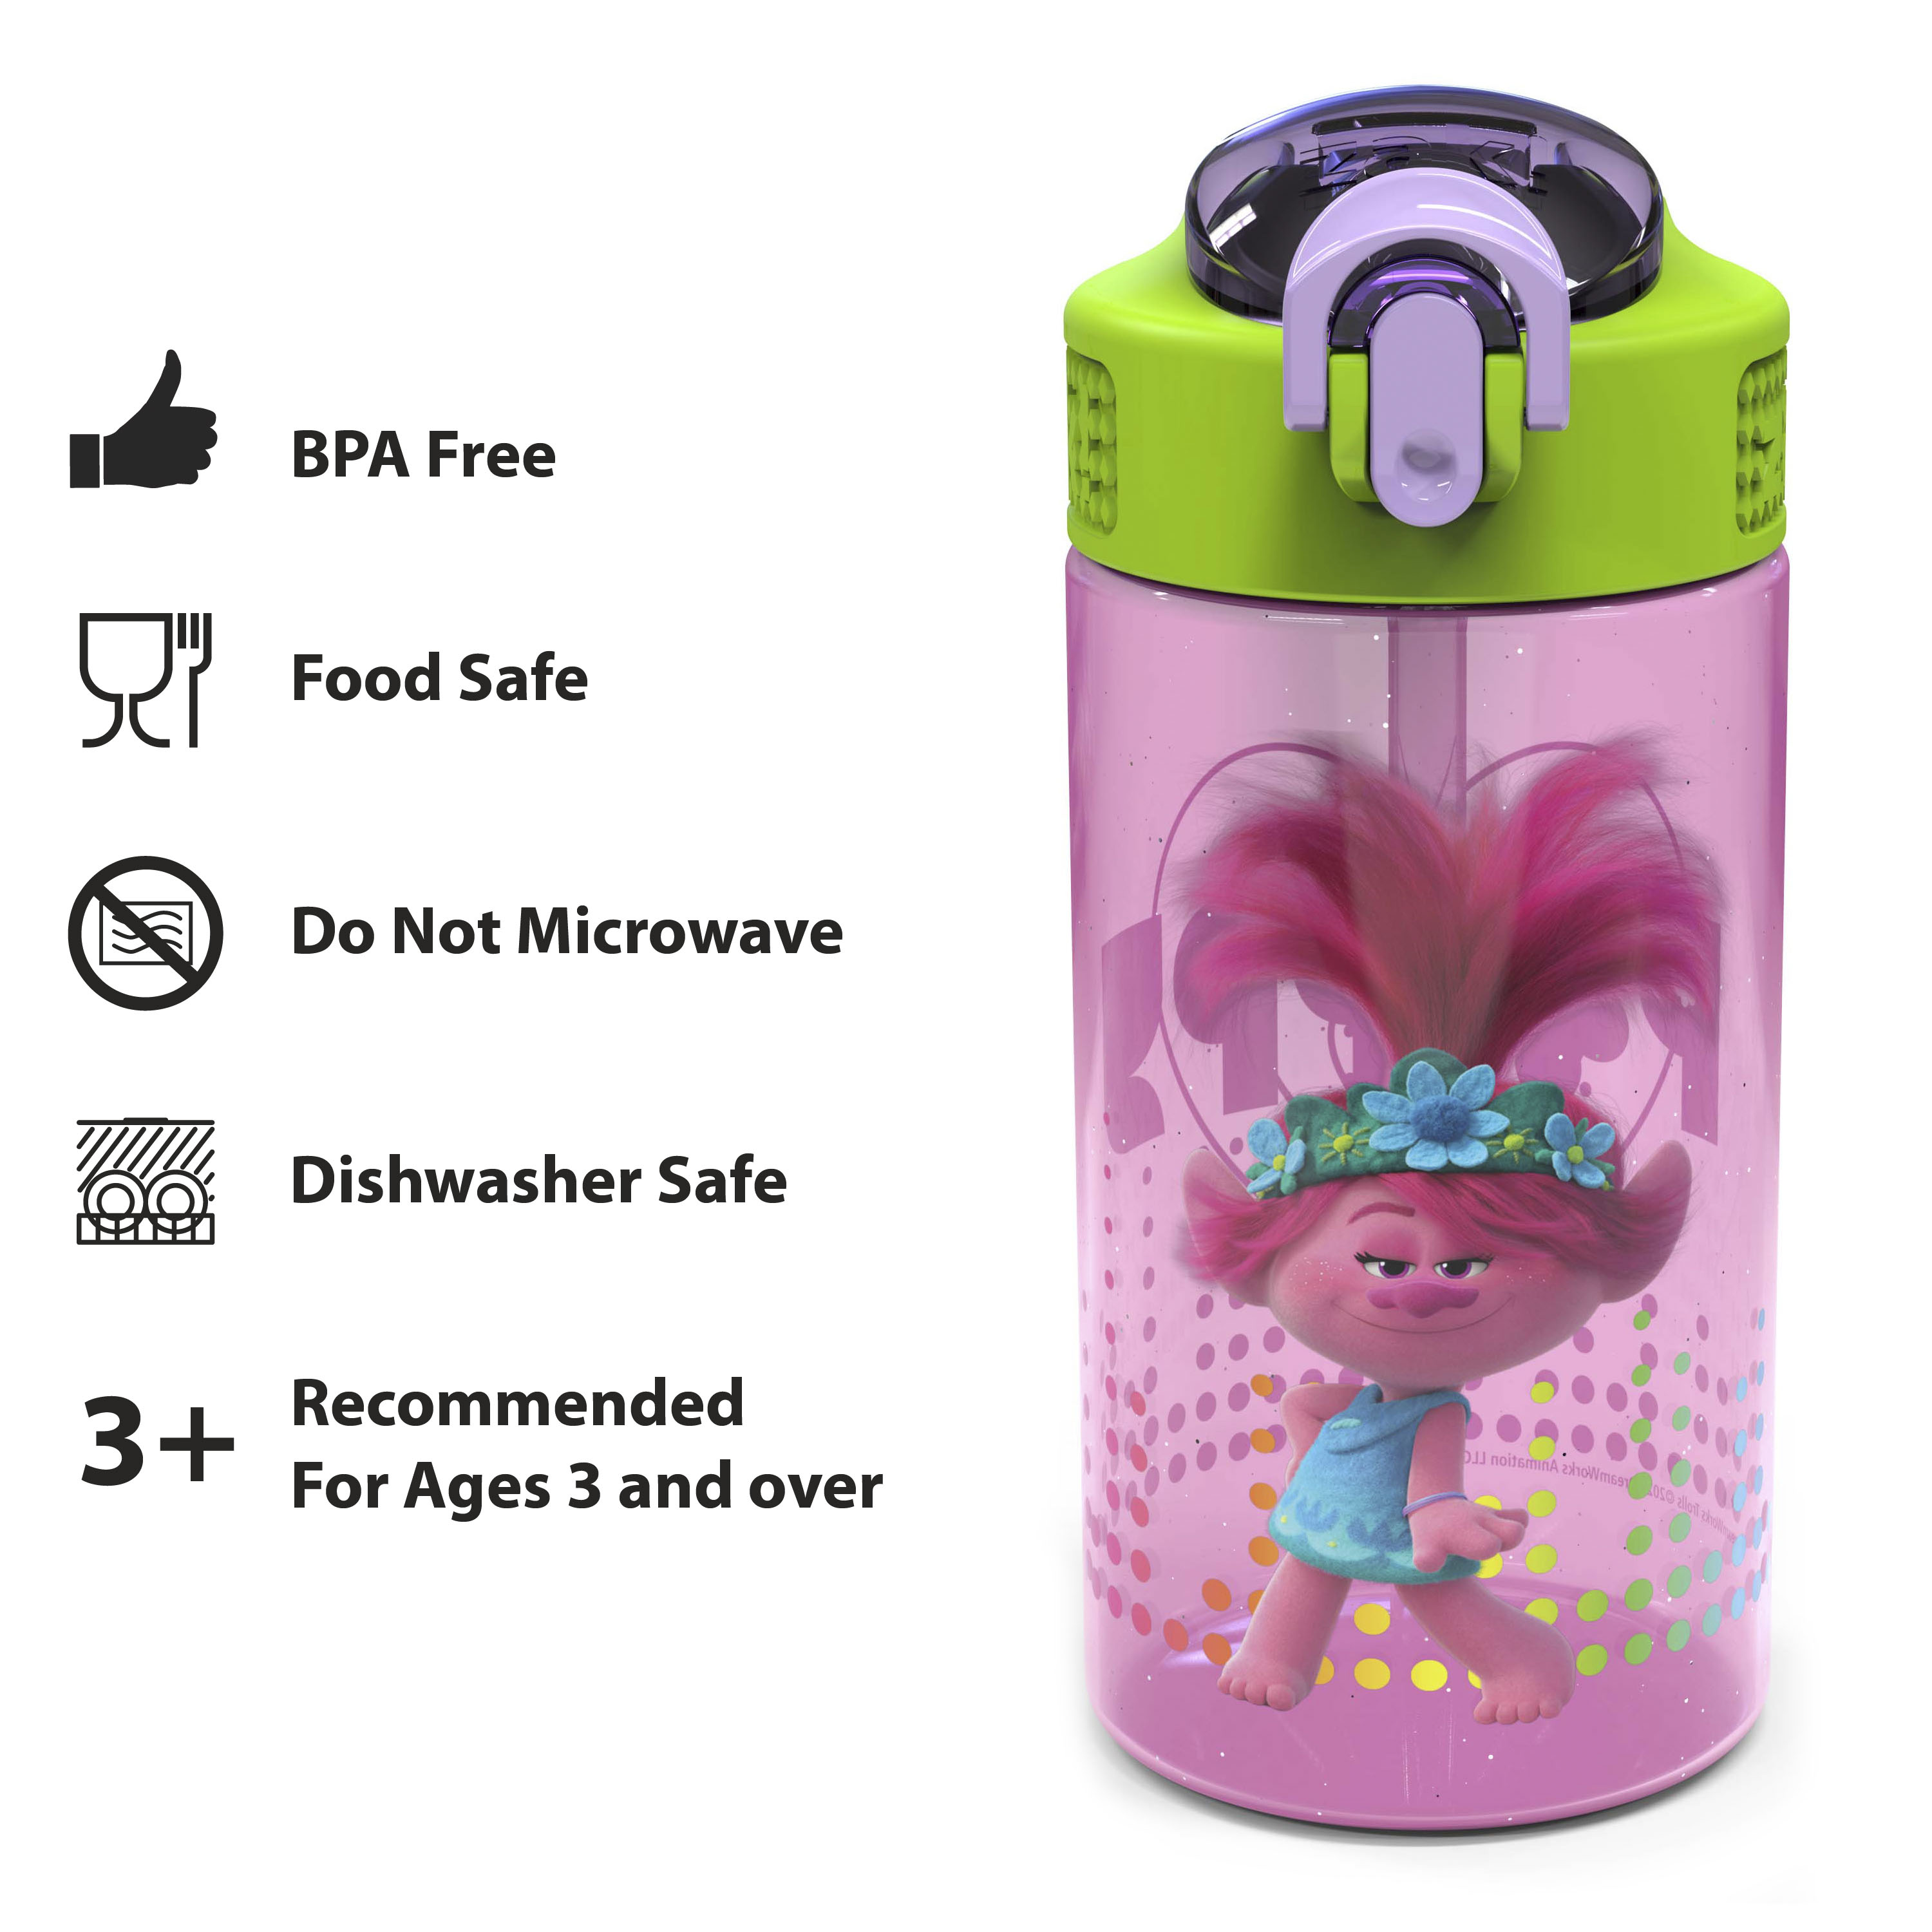 Trolls 2 Movie 16 ounce Reusable Plastic Water Bottle with Straw, Poppy, 2-piece set slideshow image 7